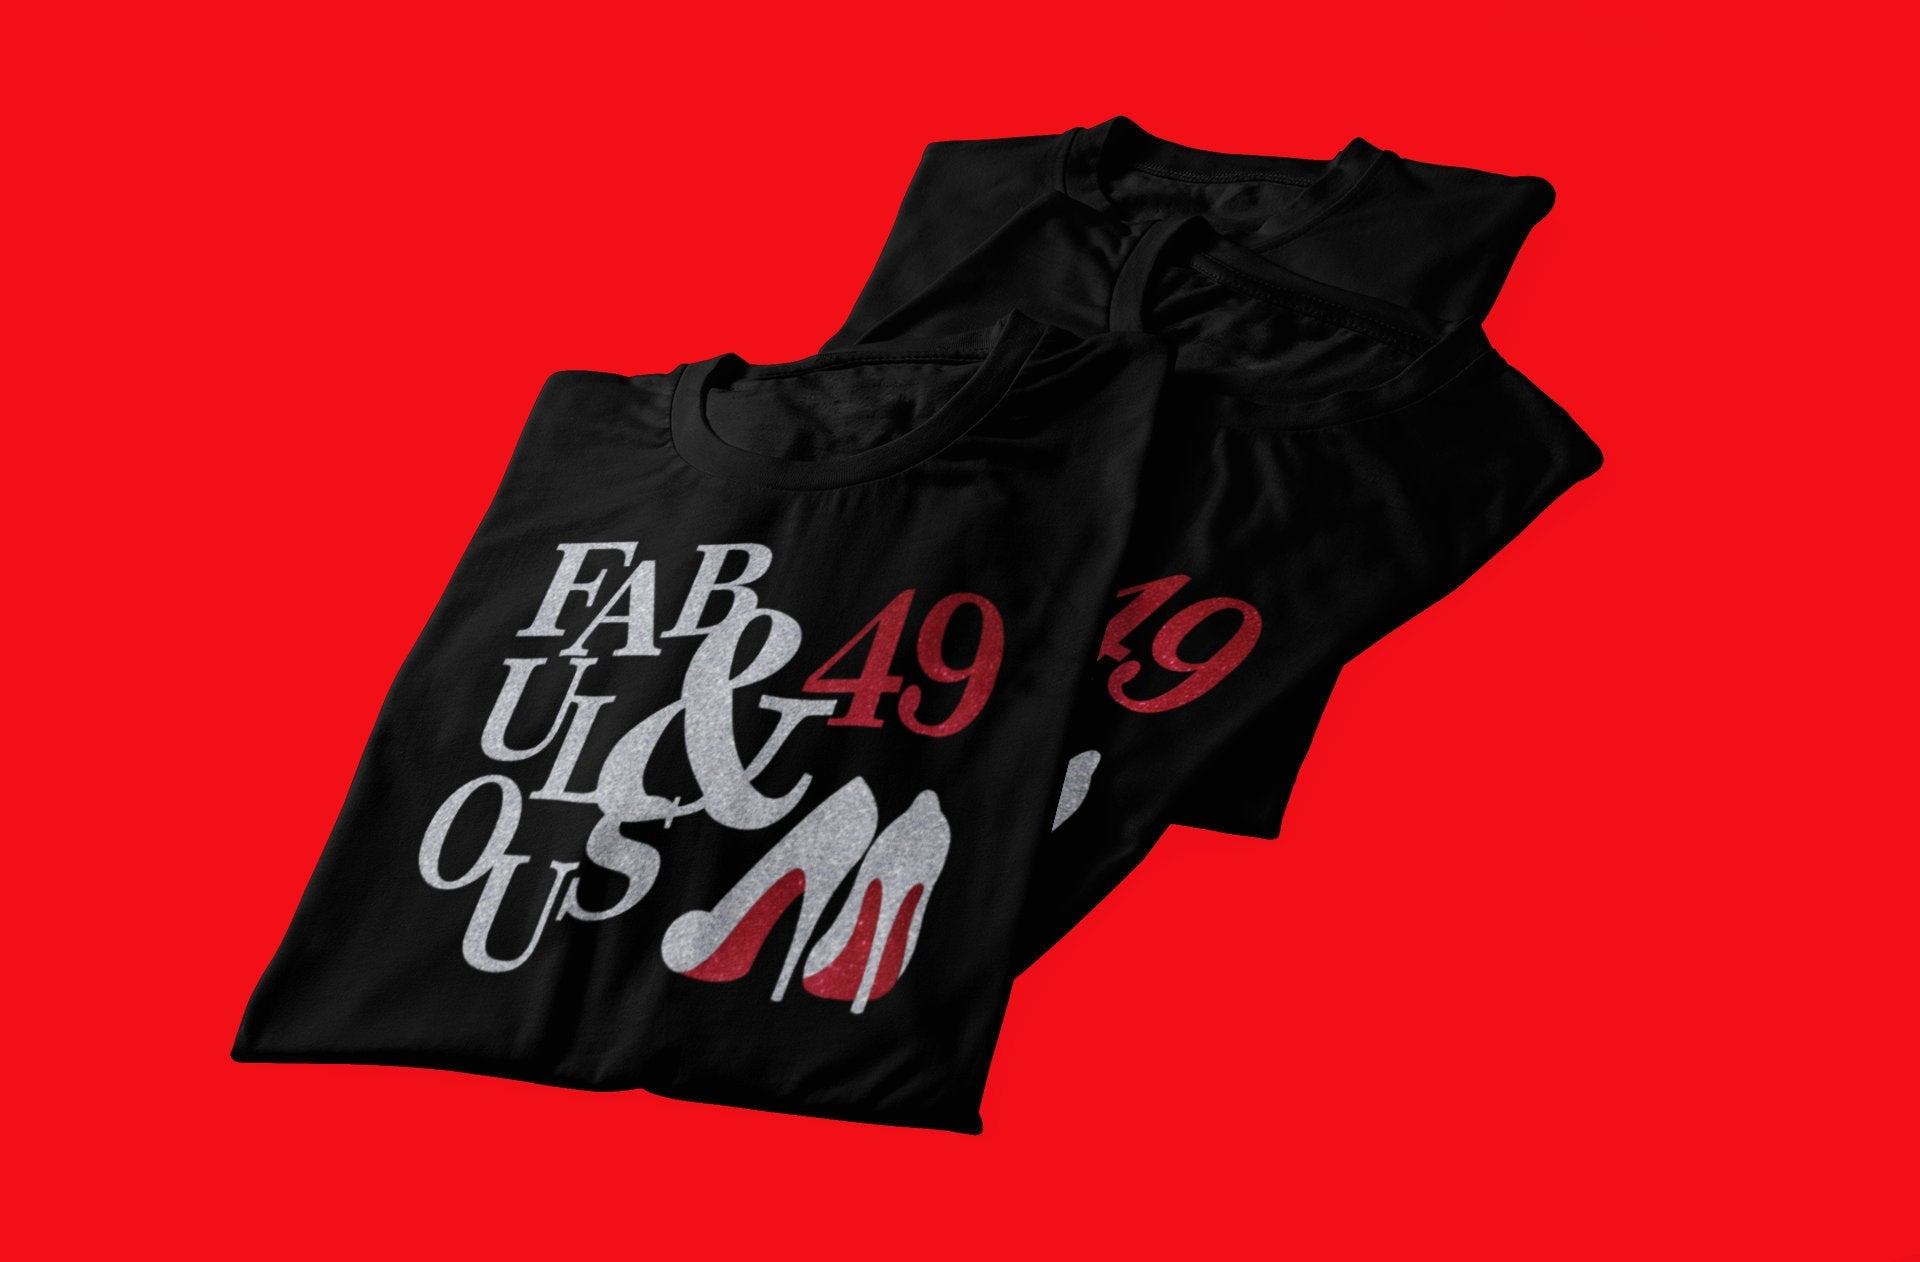 Fabulous Heels Birthday tee with age